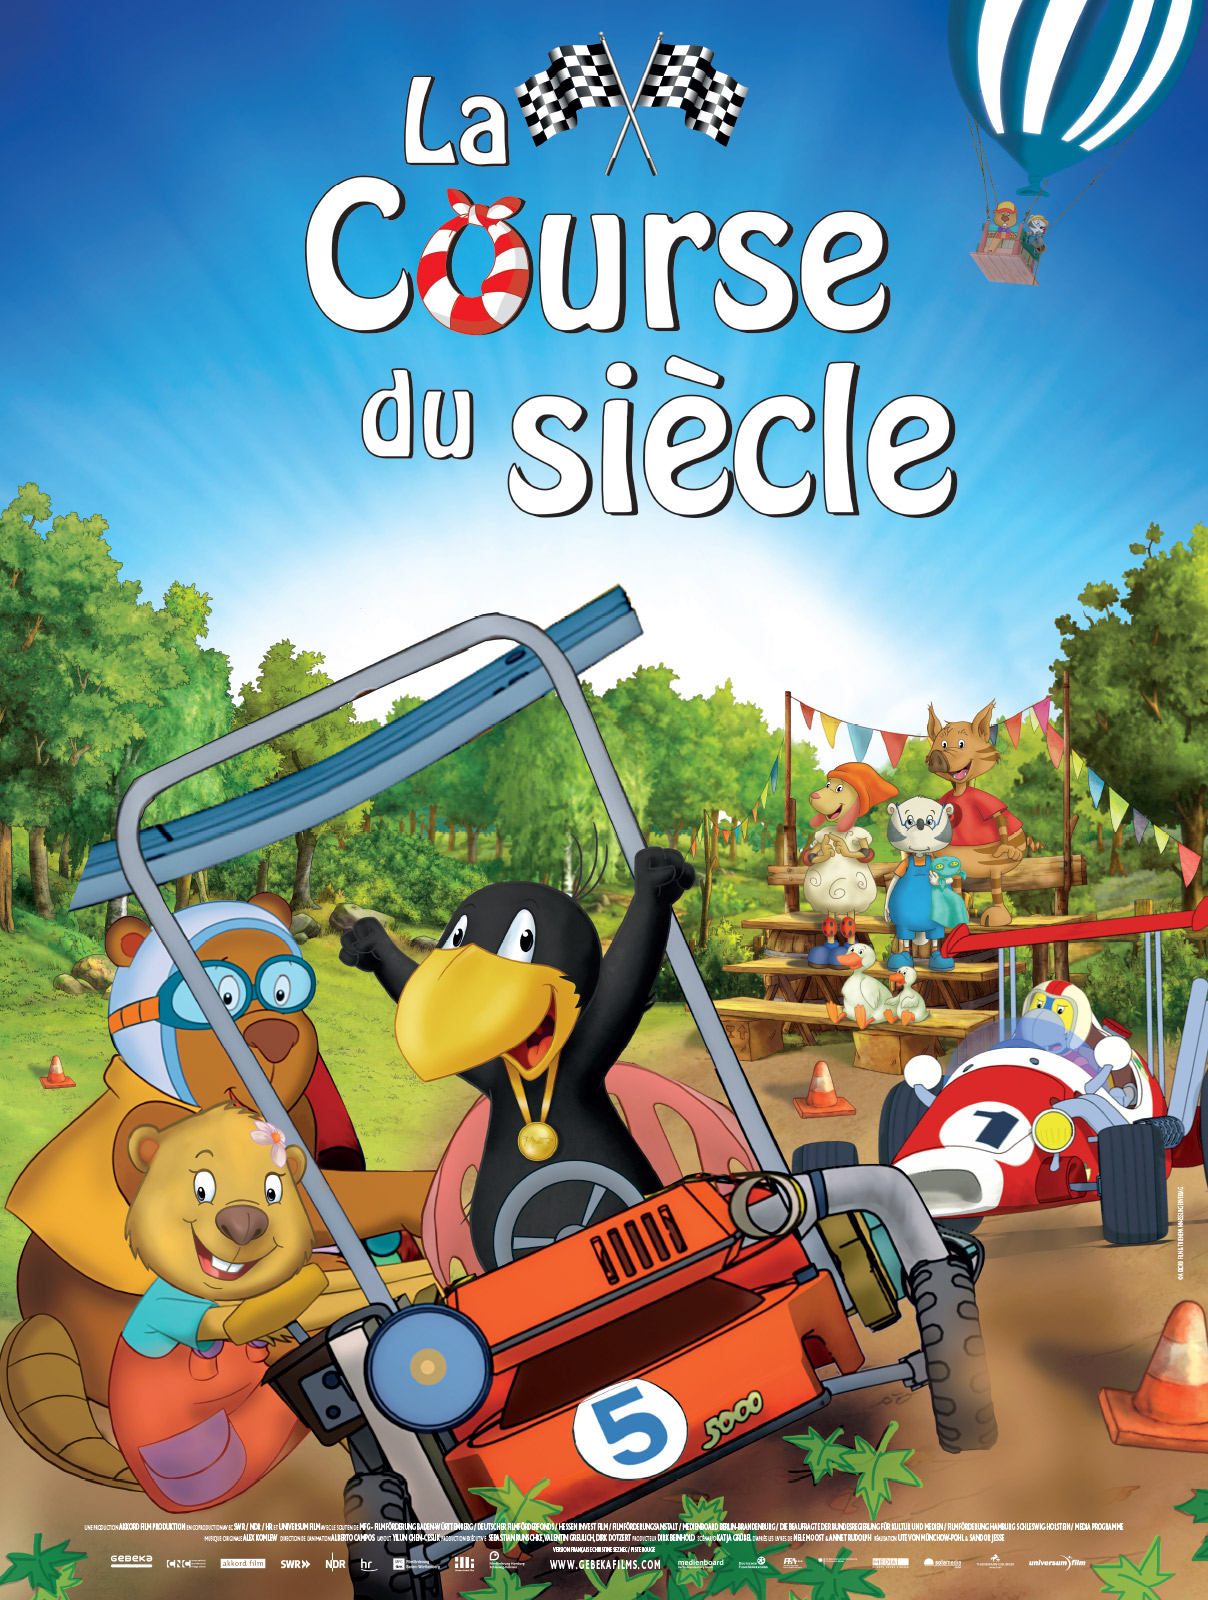 AFF COURSE DU SIECLE